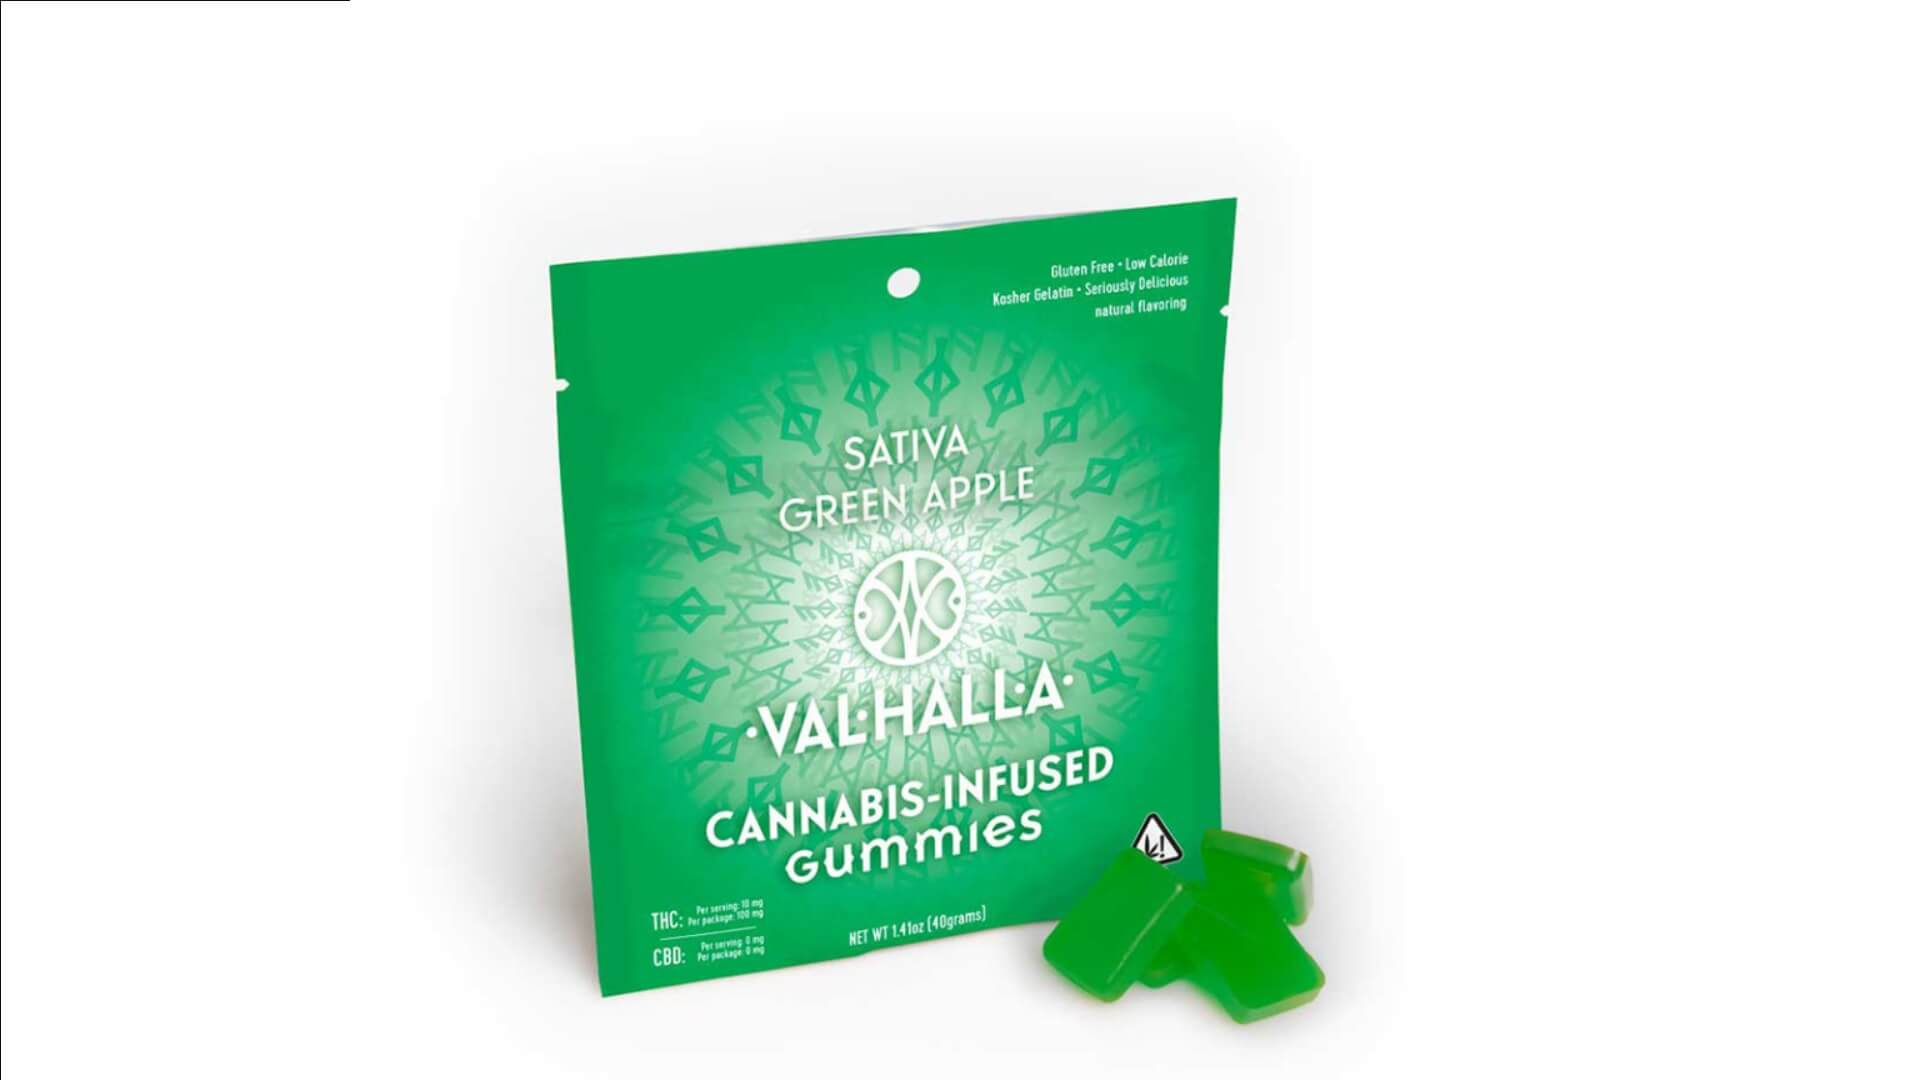 Valhalla cannabis-infused green apple gummies